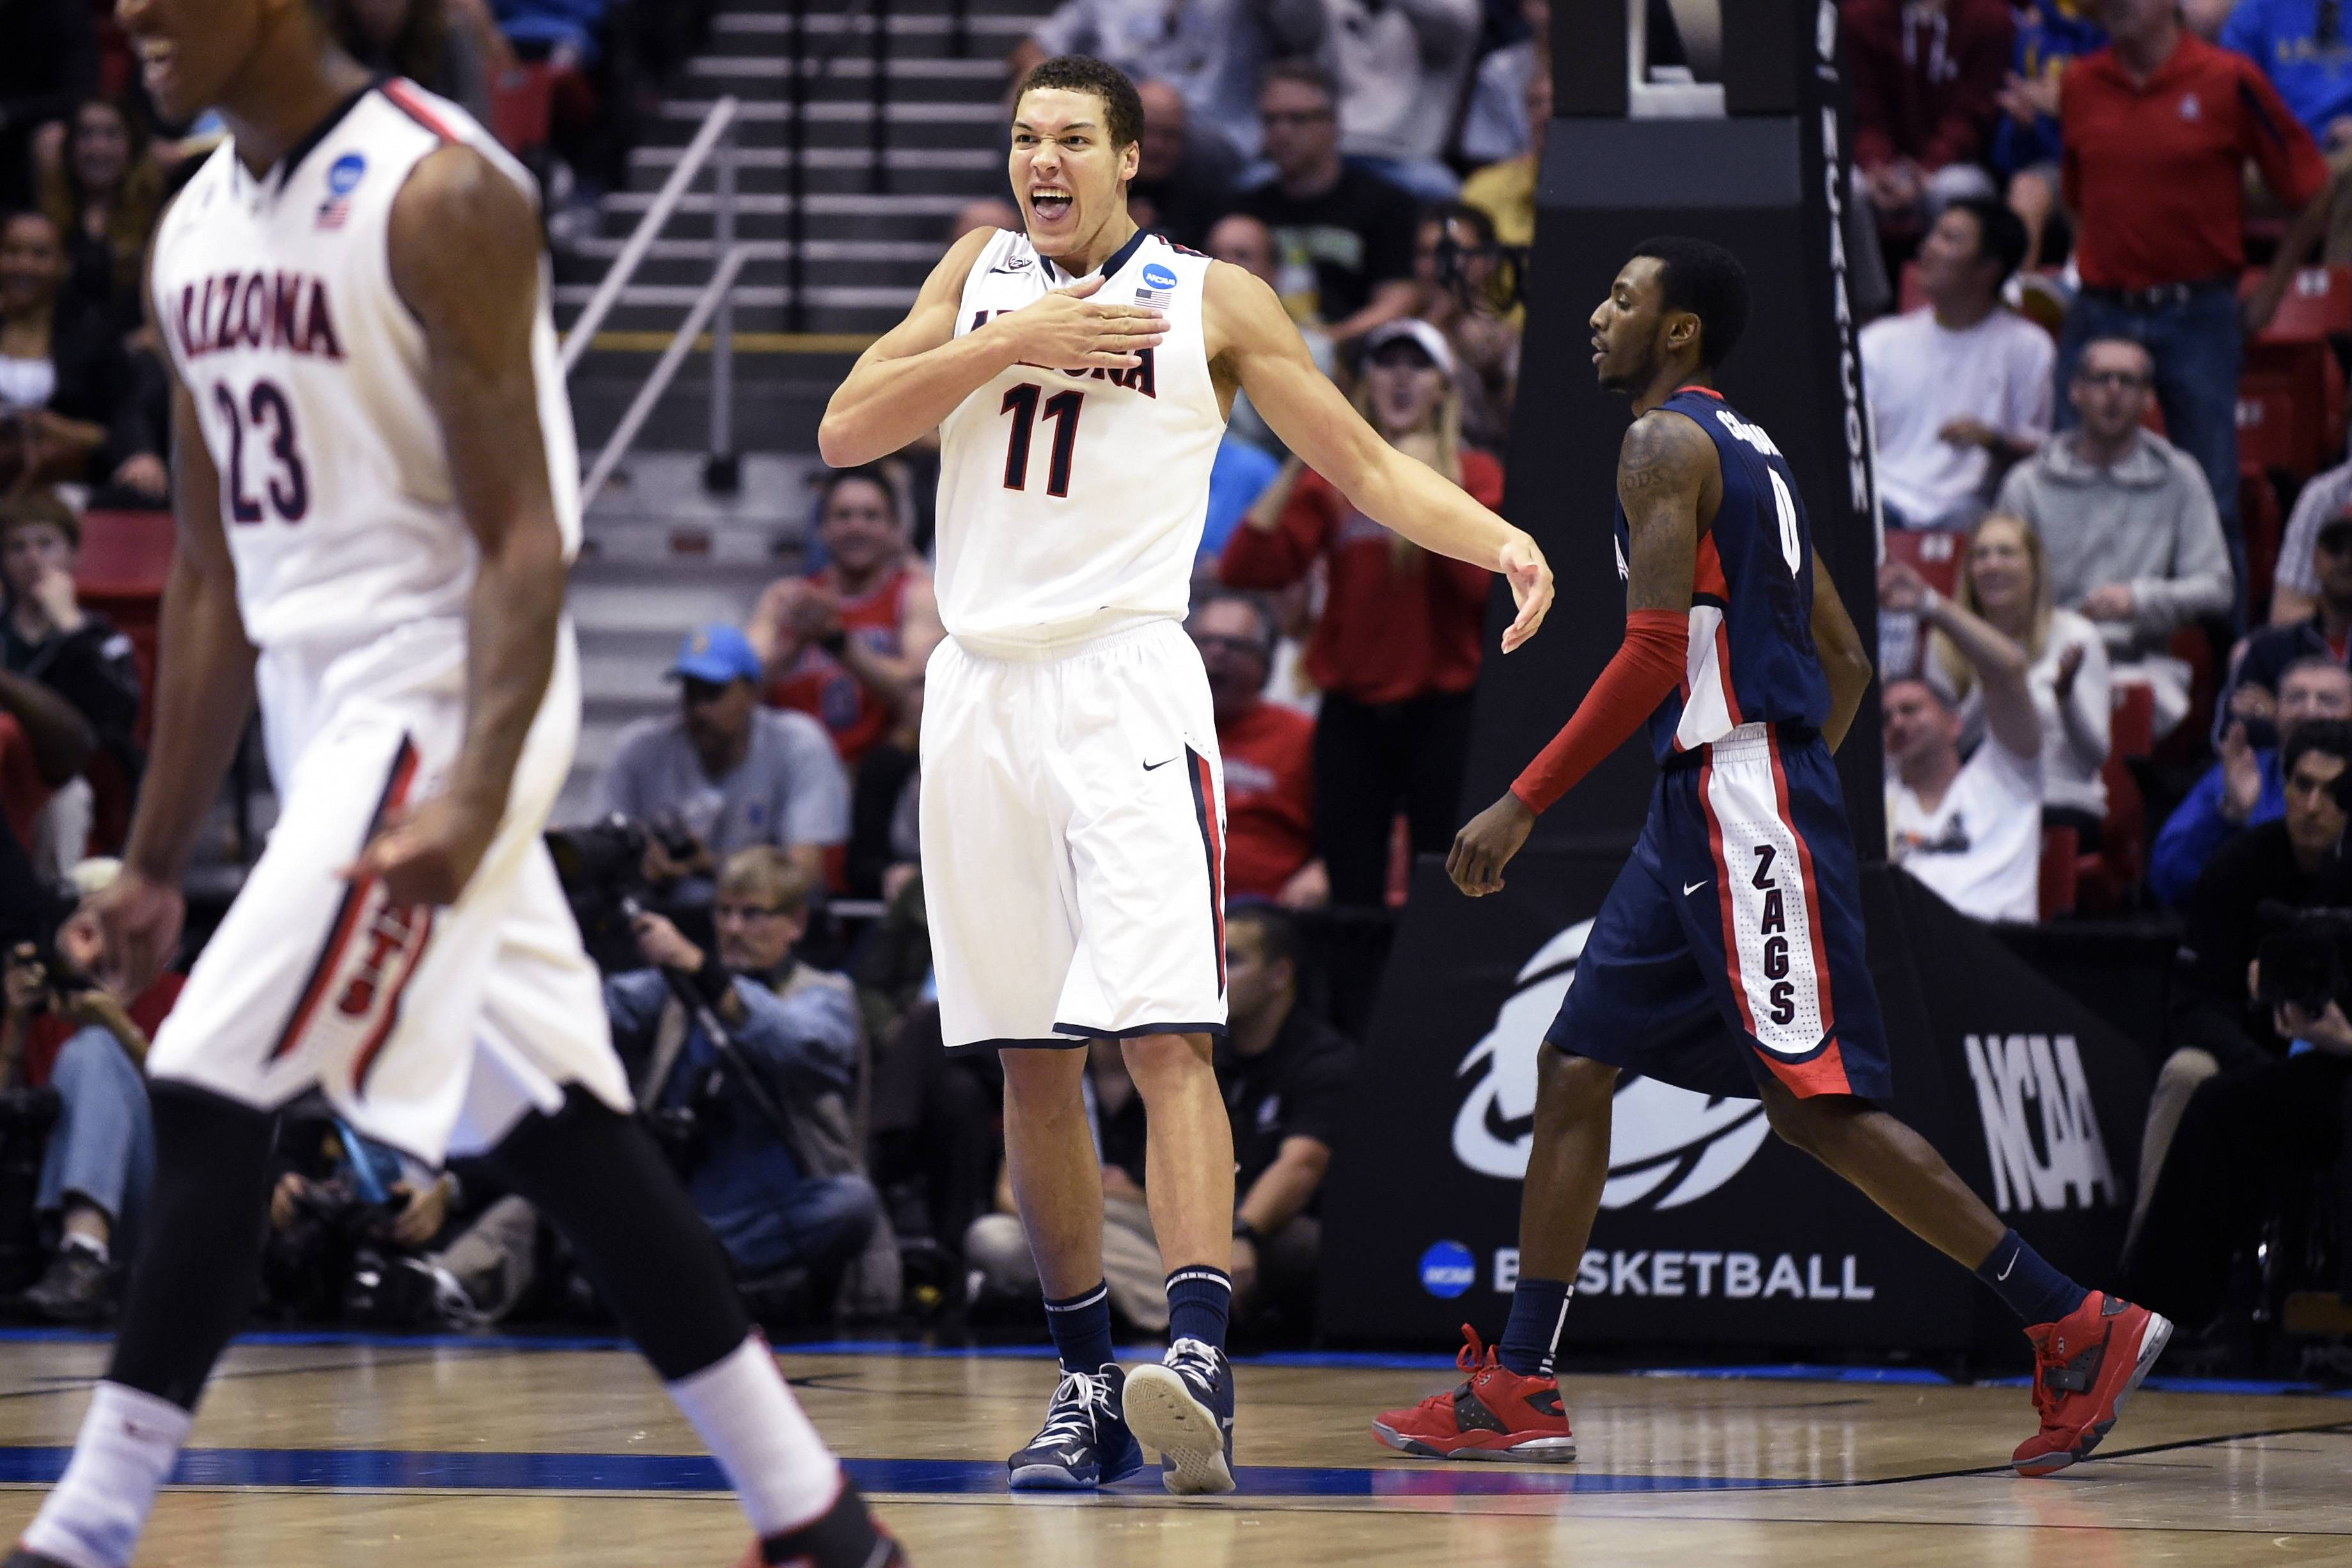 Arizona forward Aaron Gordon (11) beats his chest after scoring a basket as Gonzaga guard Gerard Coleman, right, walks towards the bench during the first half of a third-round game in the NCAA college basketball tournament Sunday, March 23, 2014, in San Diego.